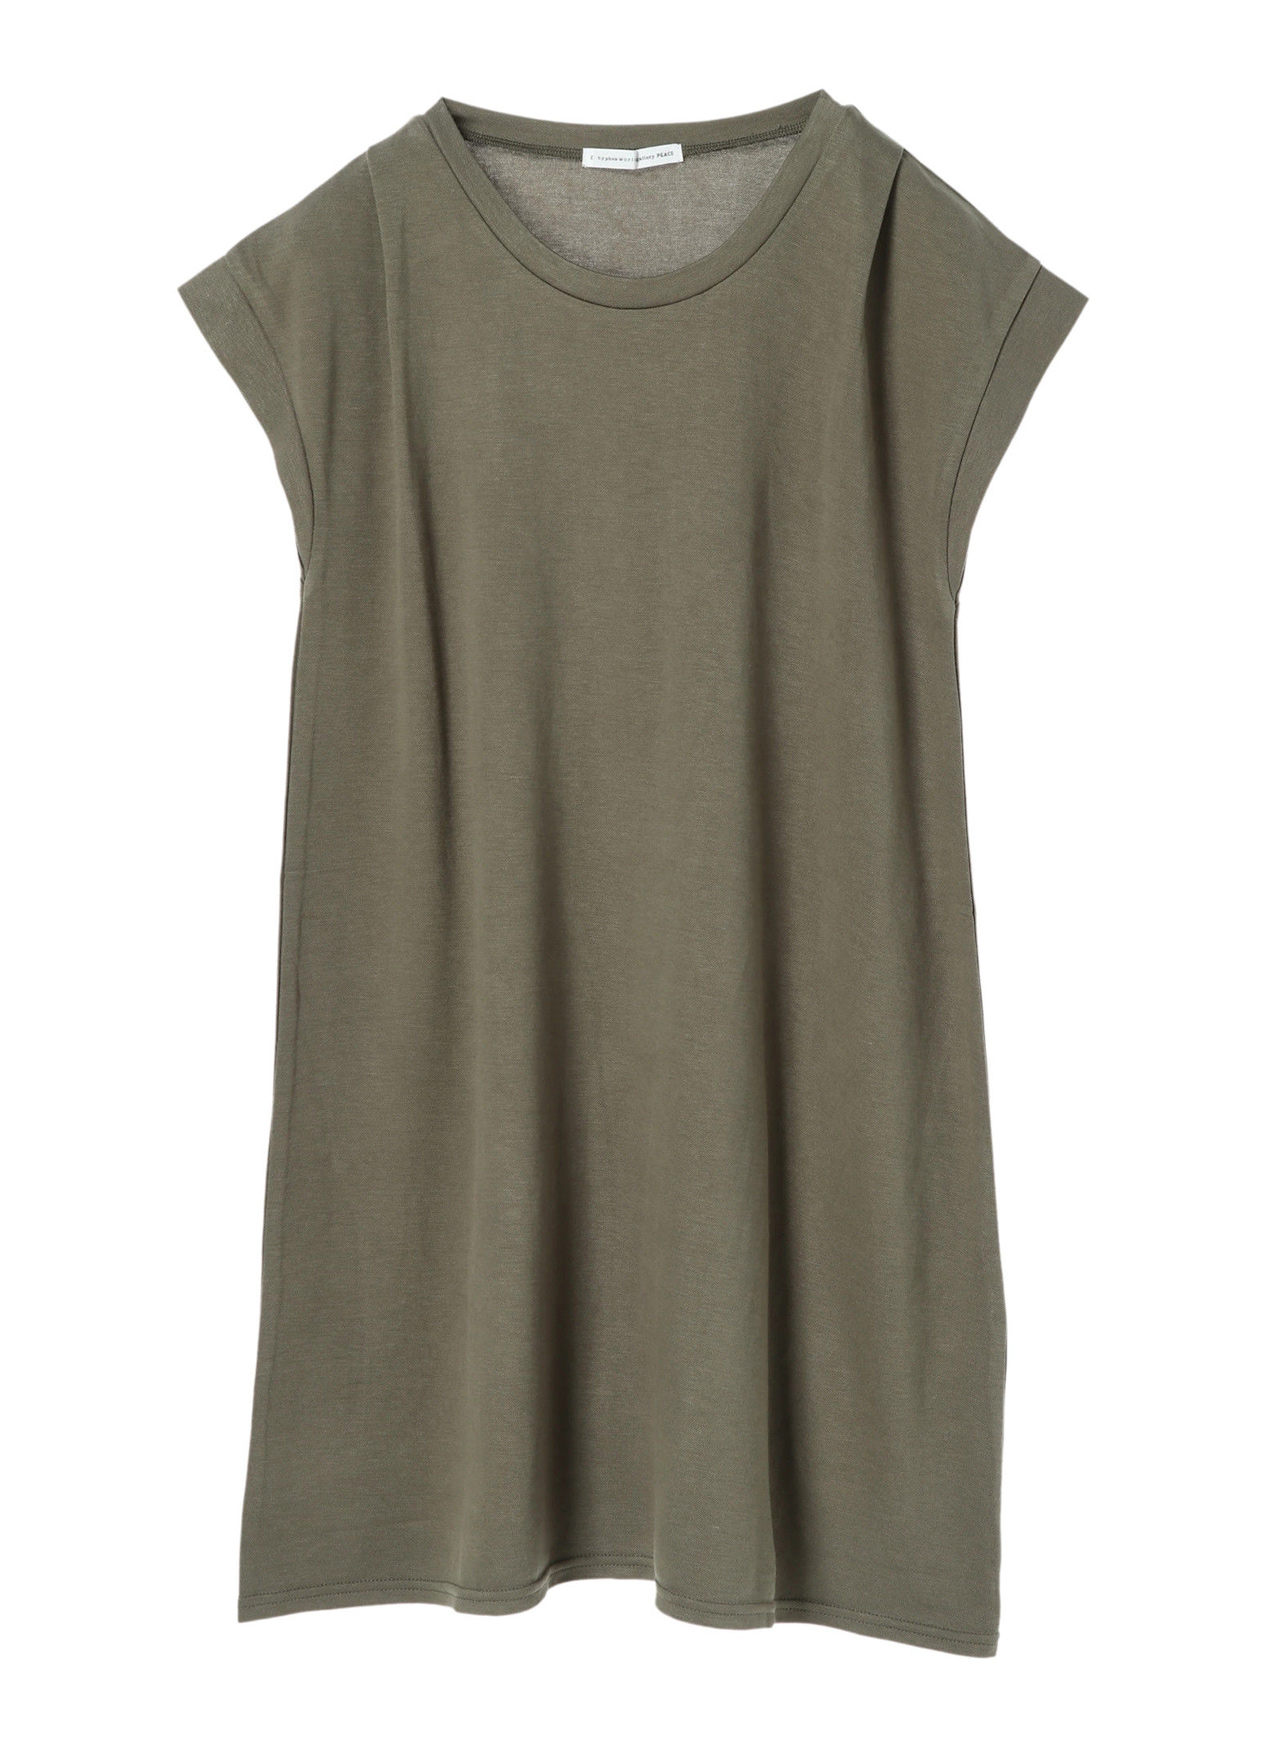 E-hyphen World Gallery Kumira Top - Khaki